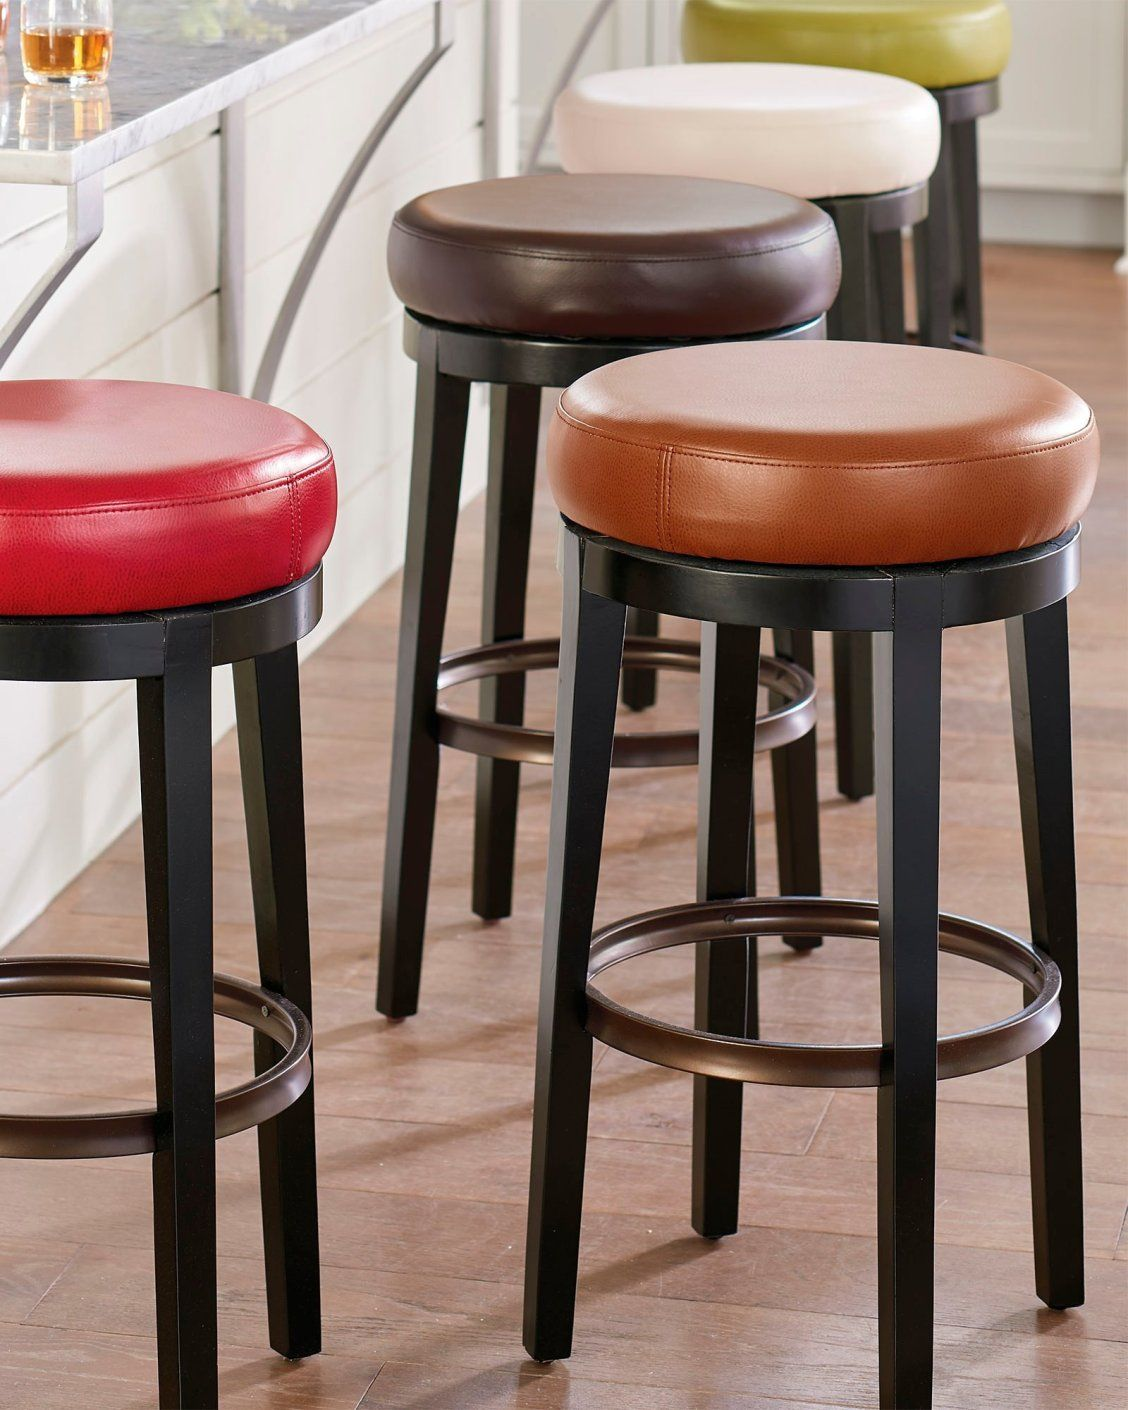 Awesome Jack Swivel Bar Counter Stool Everyday Entertaining Gmtry Best Dining Table And Chair Ideas Images Gmtryco